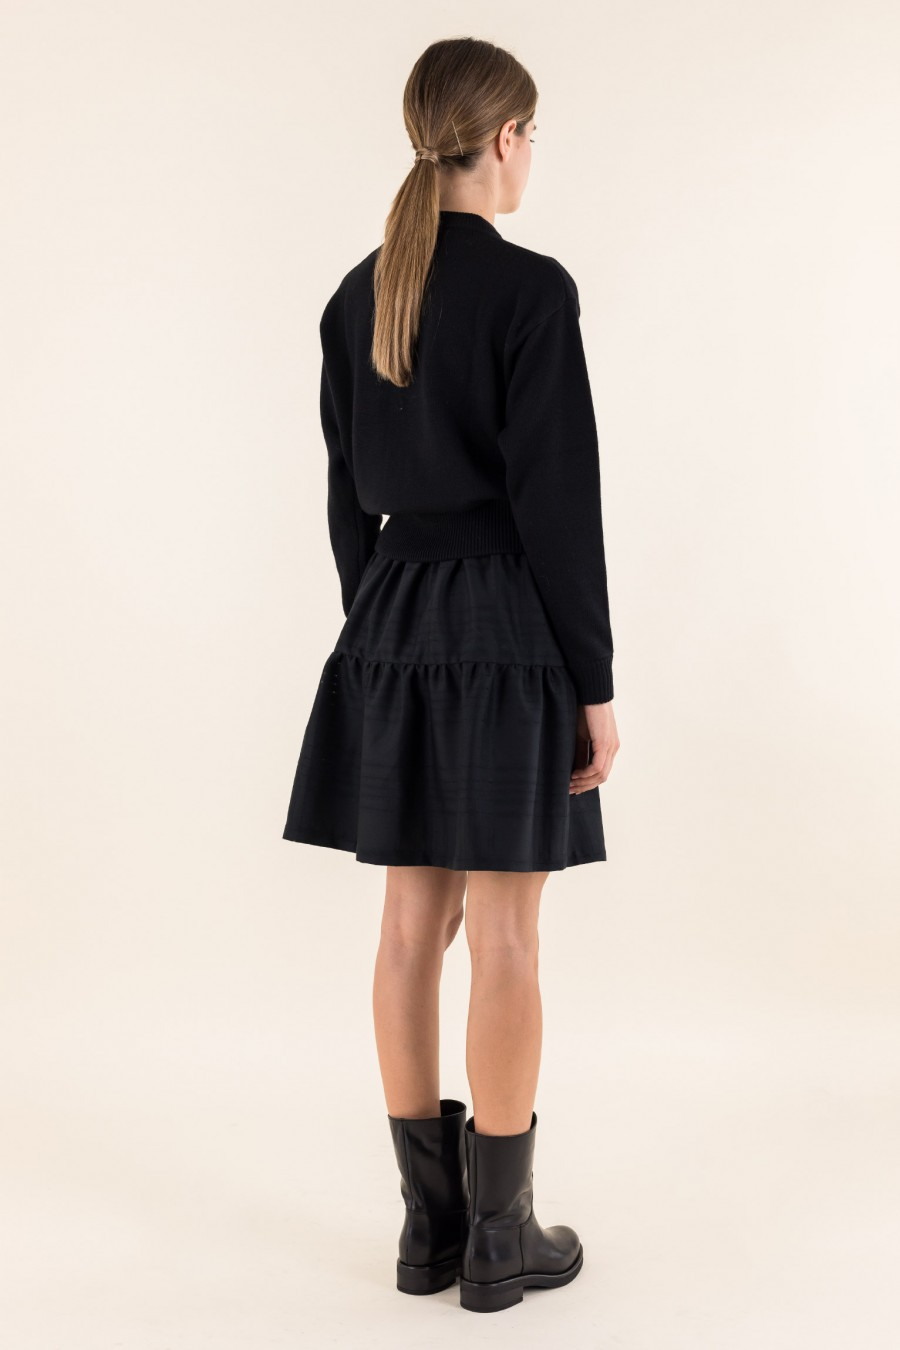 Flounced black skirt